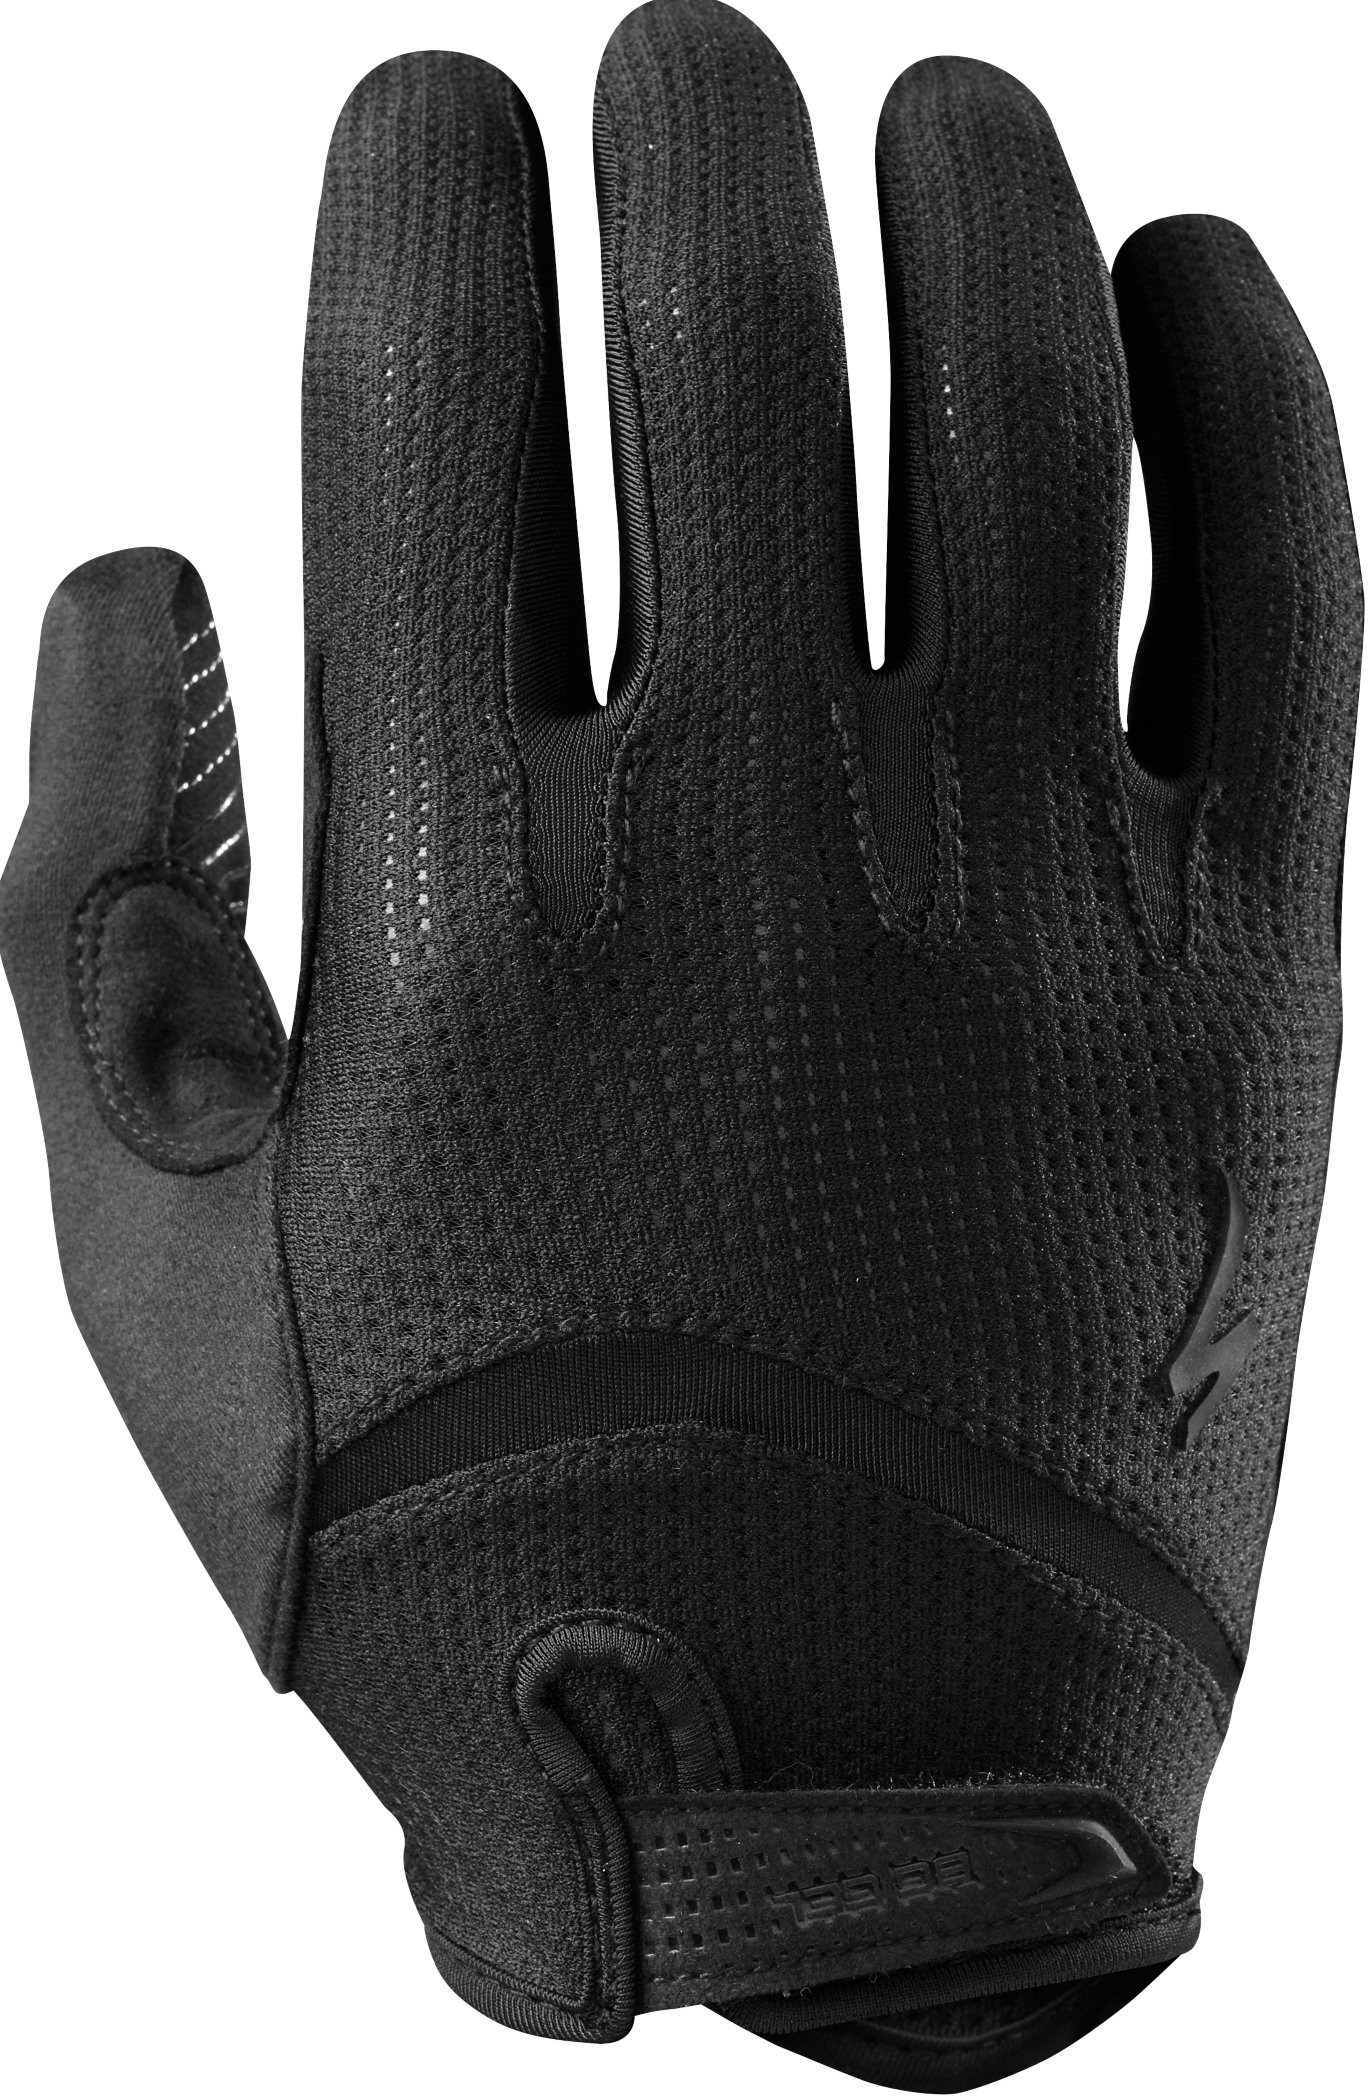 SPECIALIZED BG GEL GLOVE LF BLK/BLK S - Bikedreams & Dustbikes